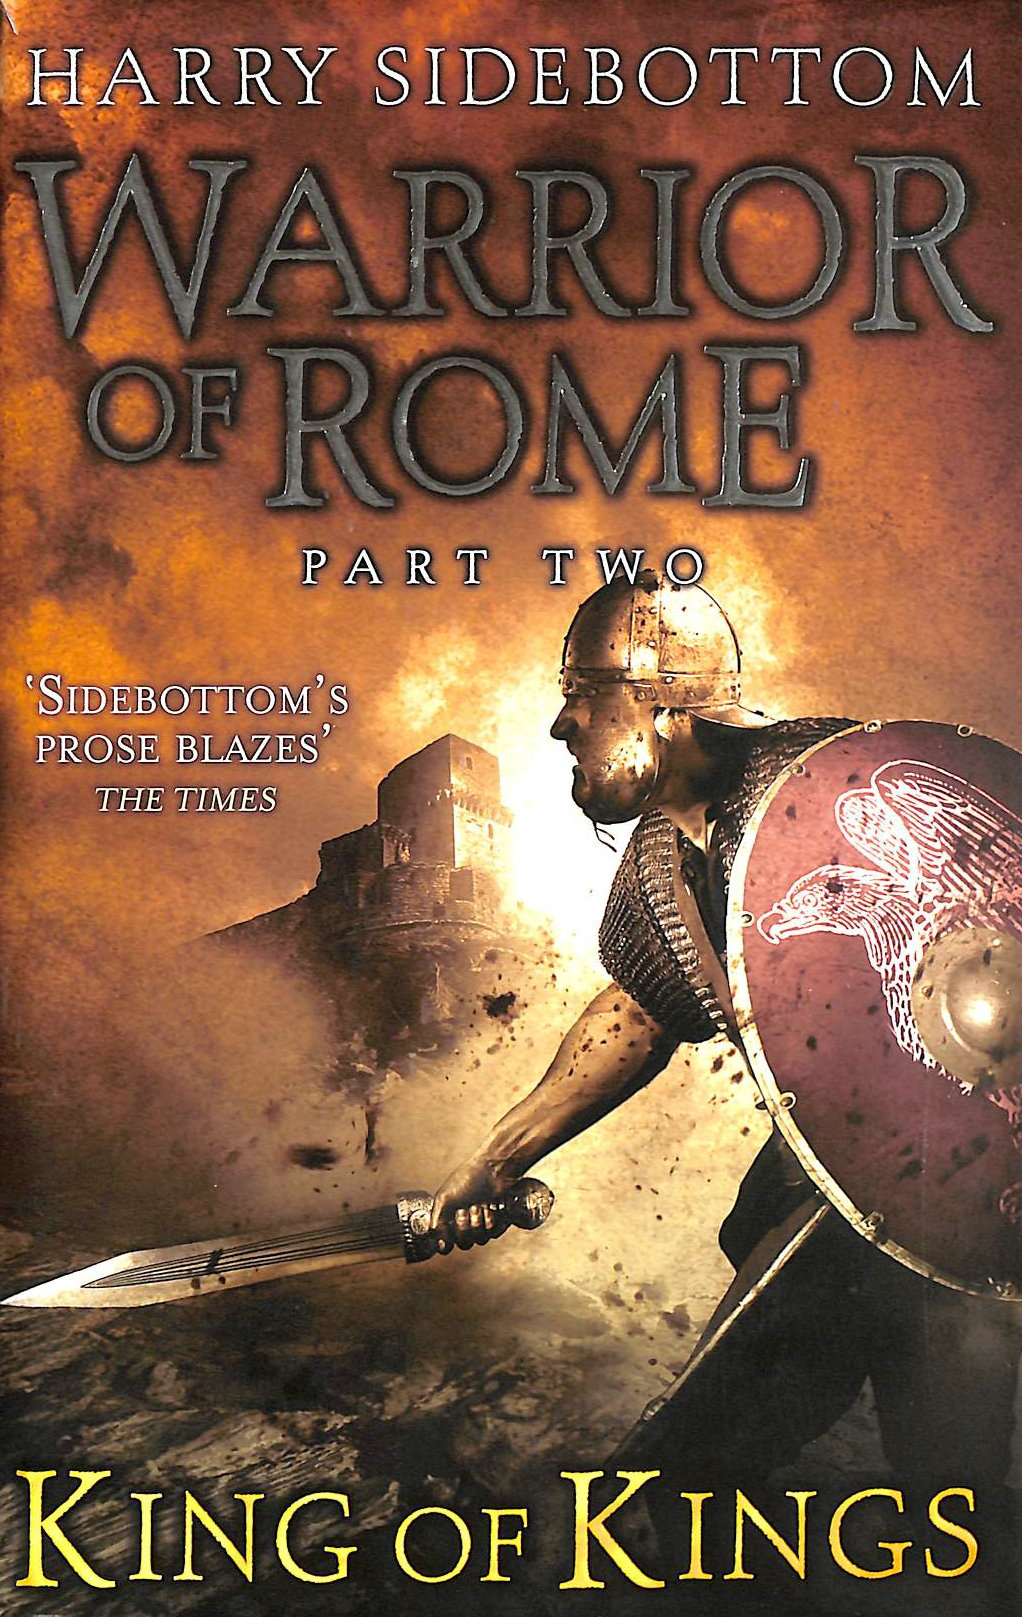 Image for Warrior of Rome II: King of Kings